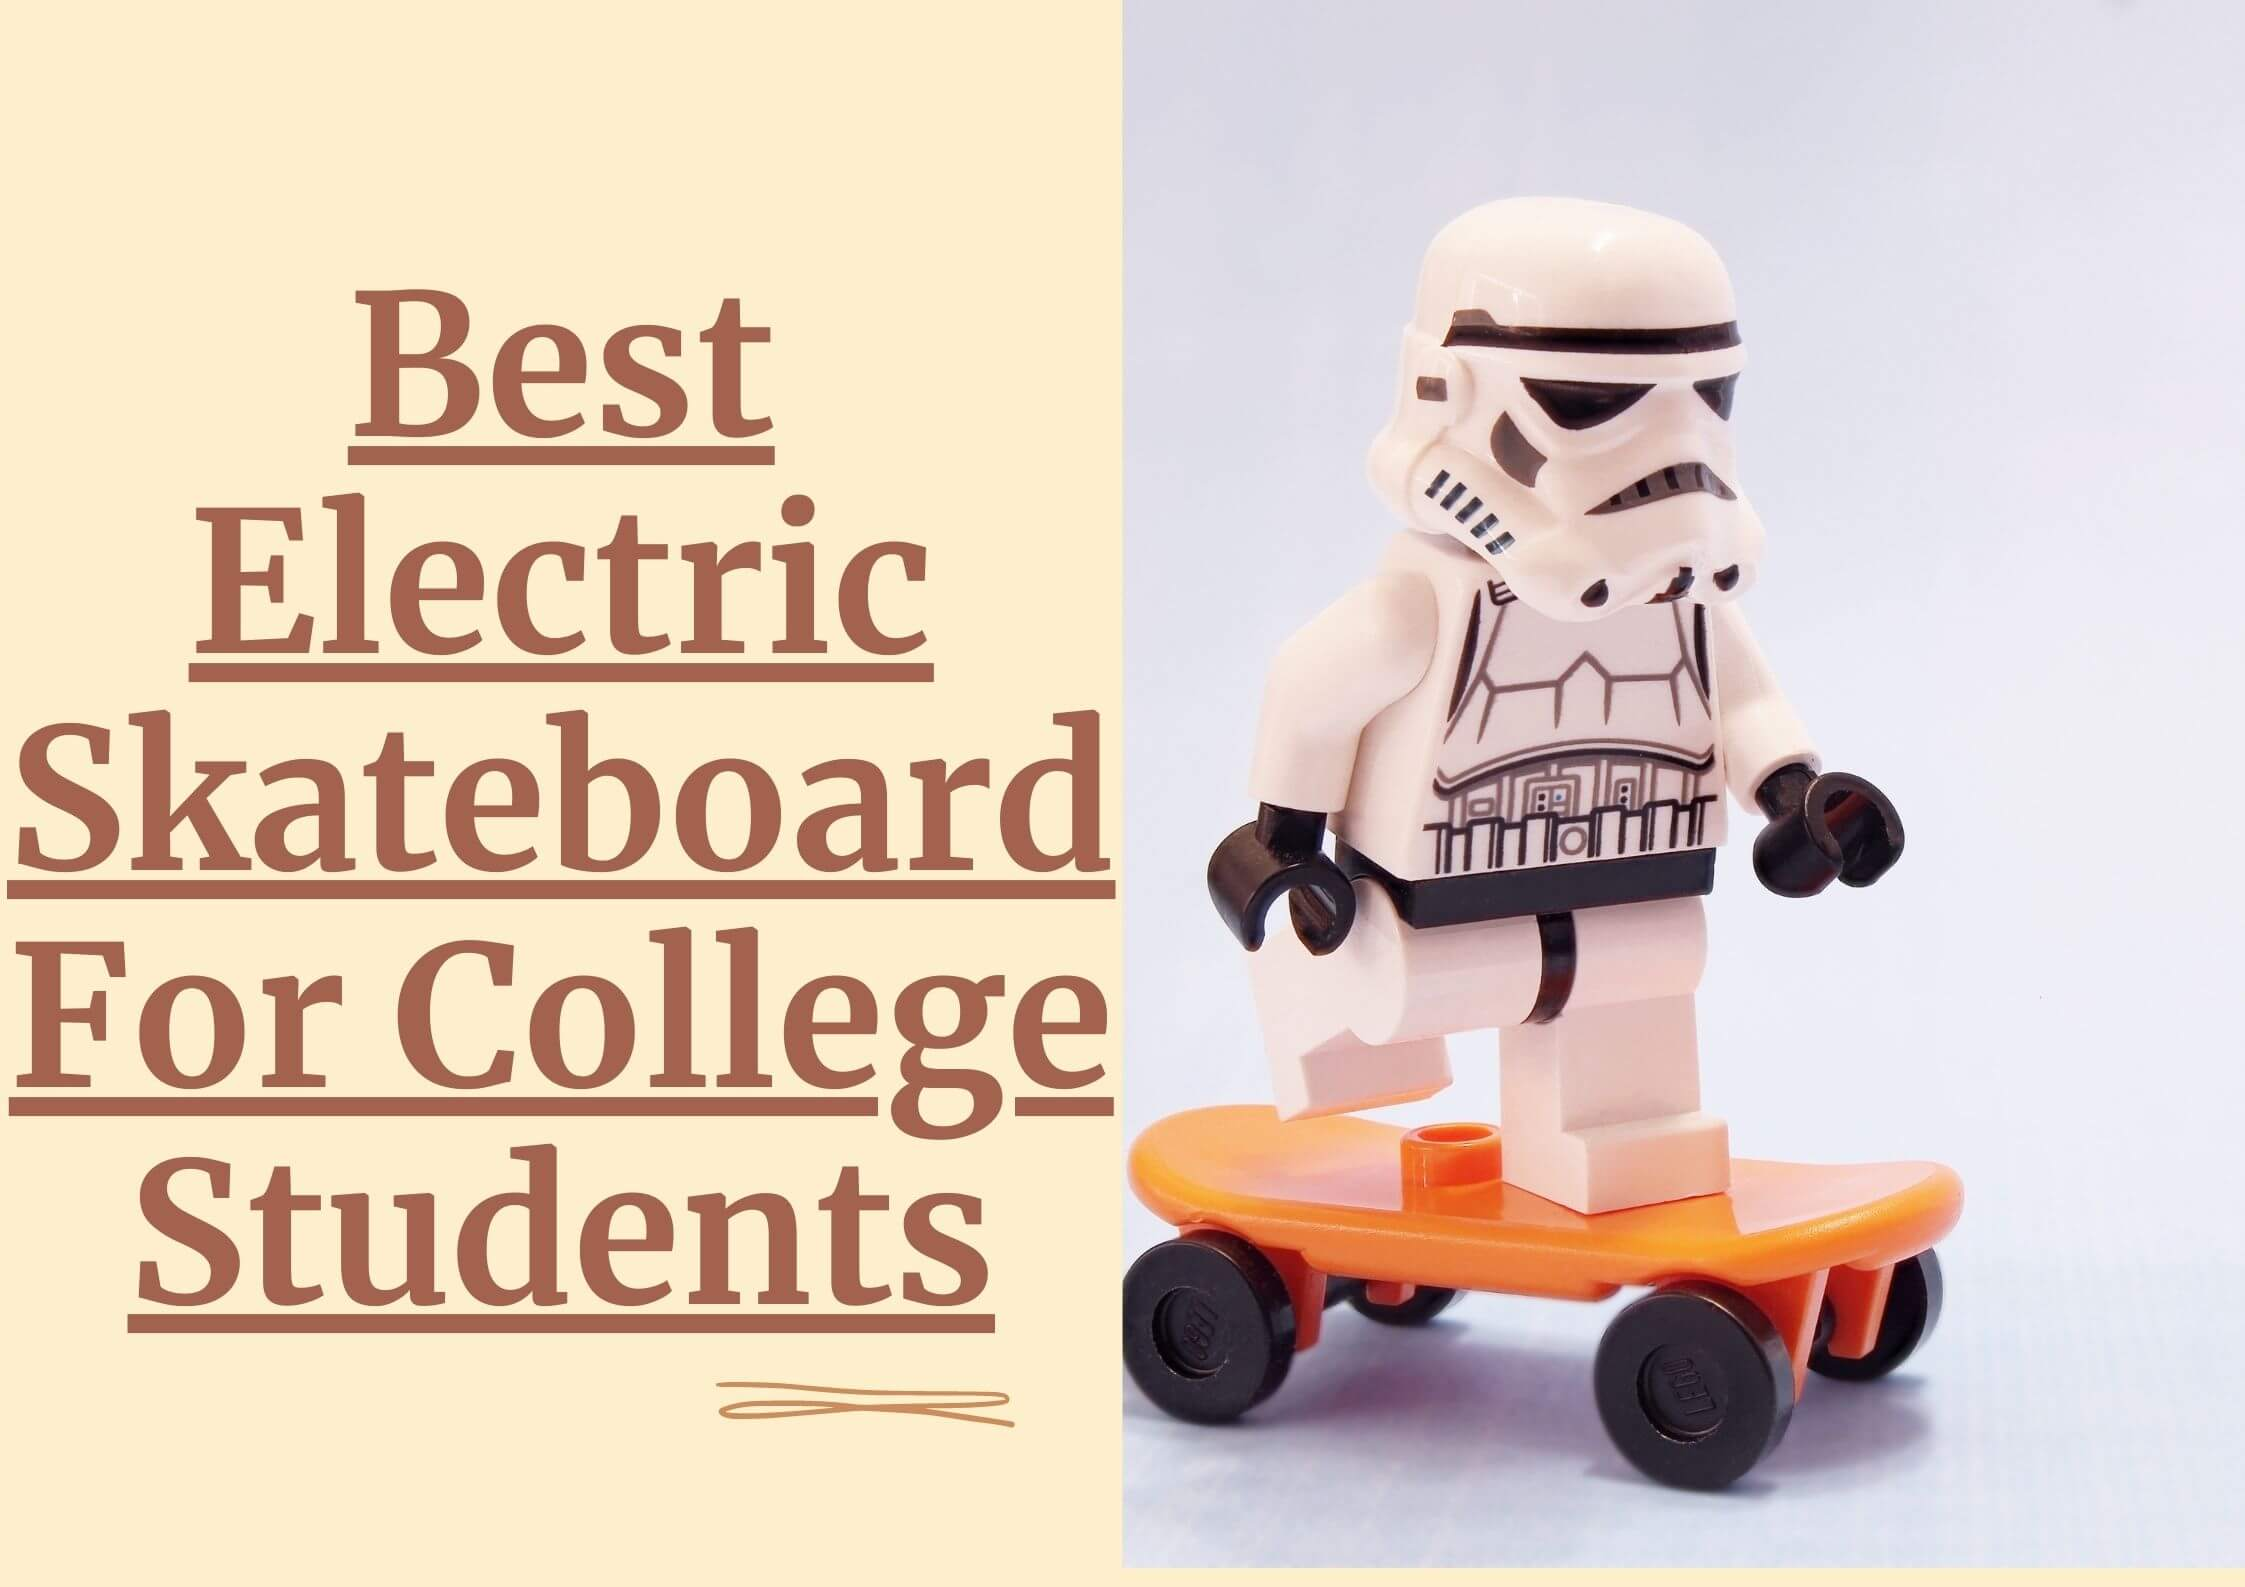 Best Electric Skateboard For College Students ( Longboard For Campus)